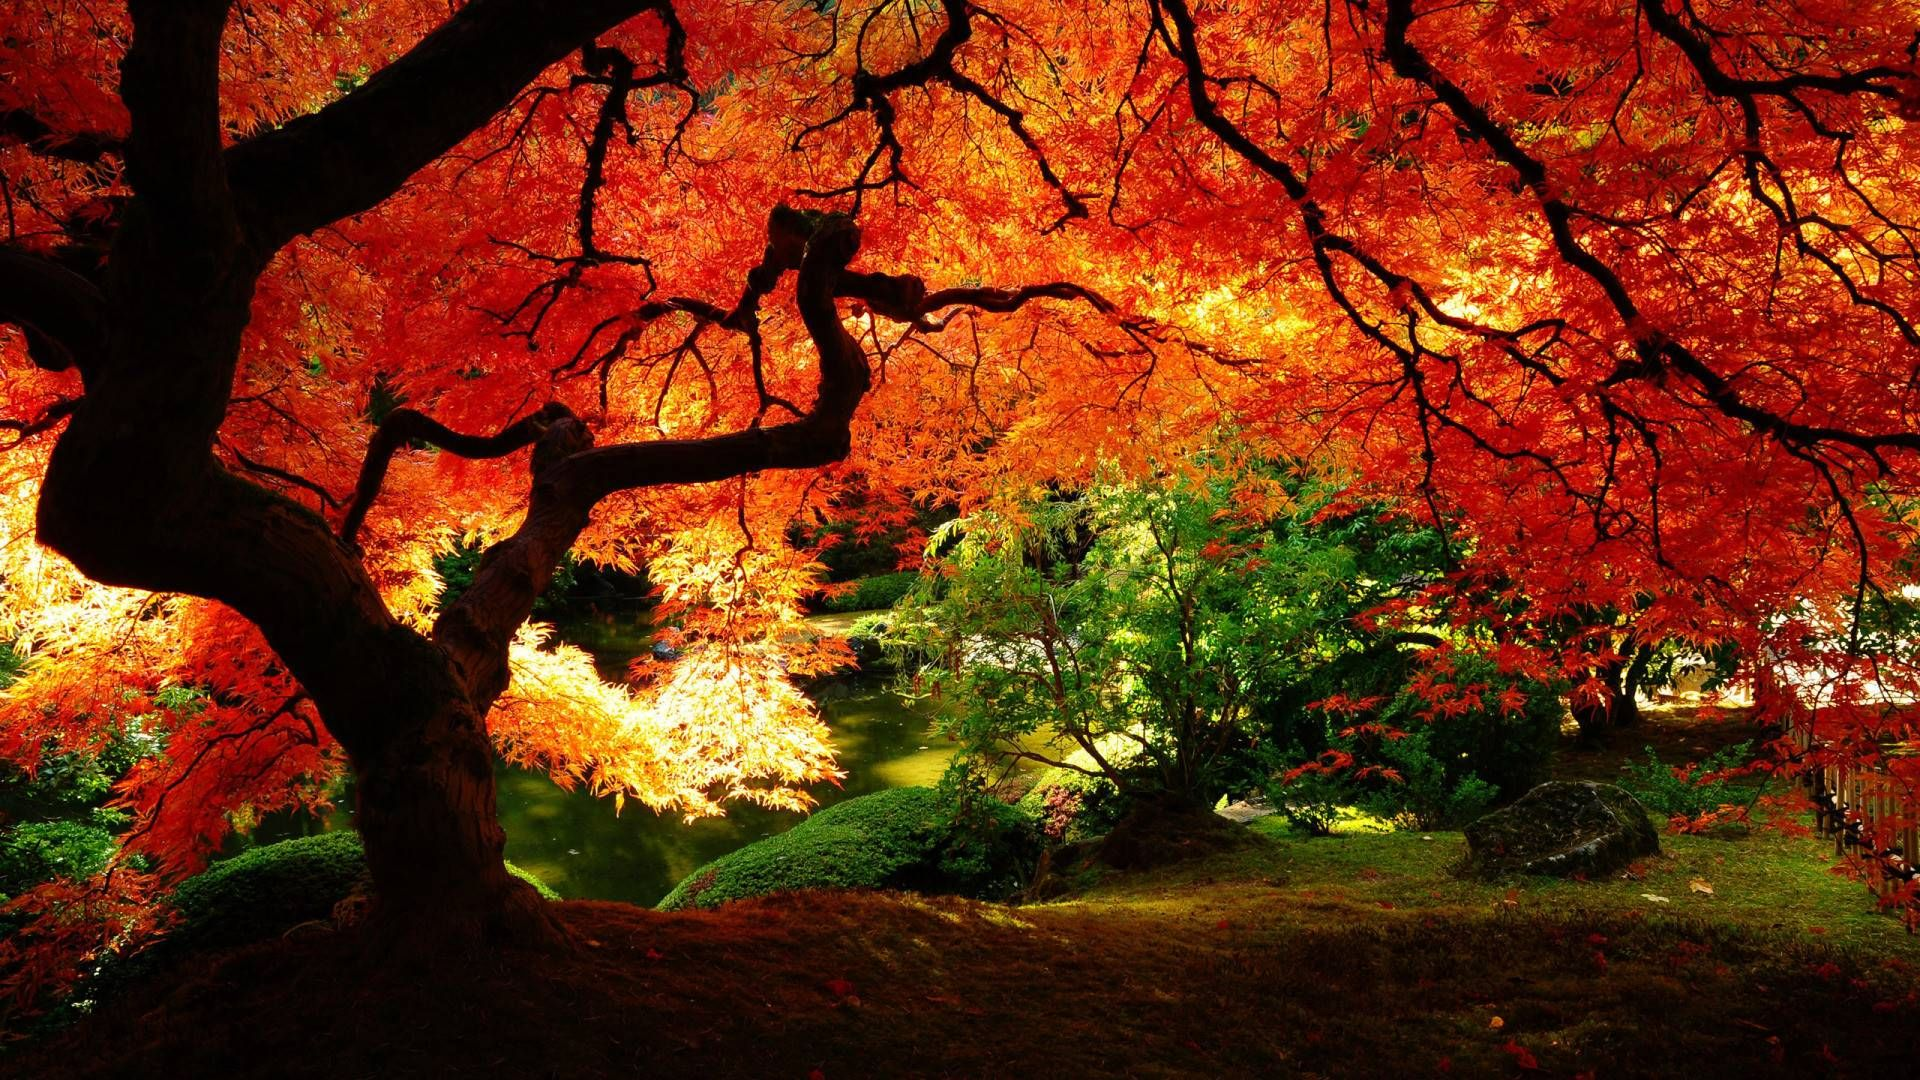 Aeuo9b9 Jpg 1920 1080 Landscape Wallpaper Fall Wallpaper Scenery Wallpaper